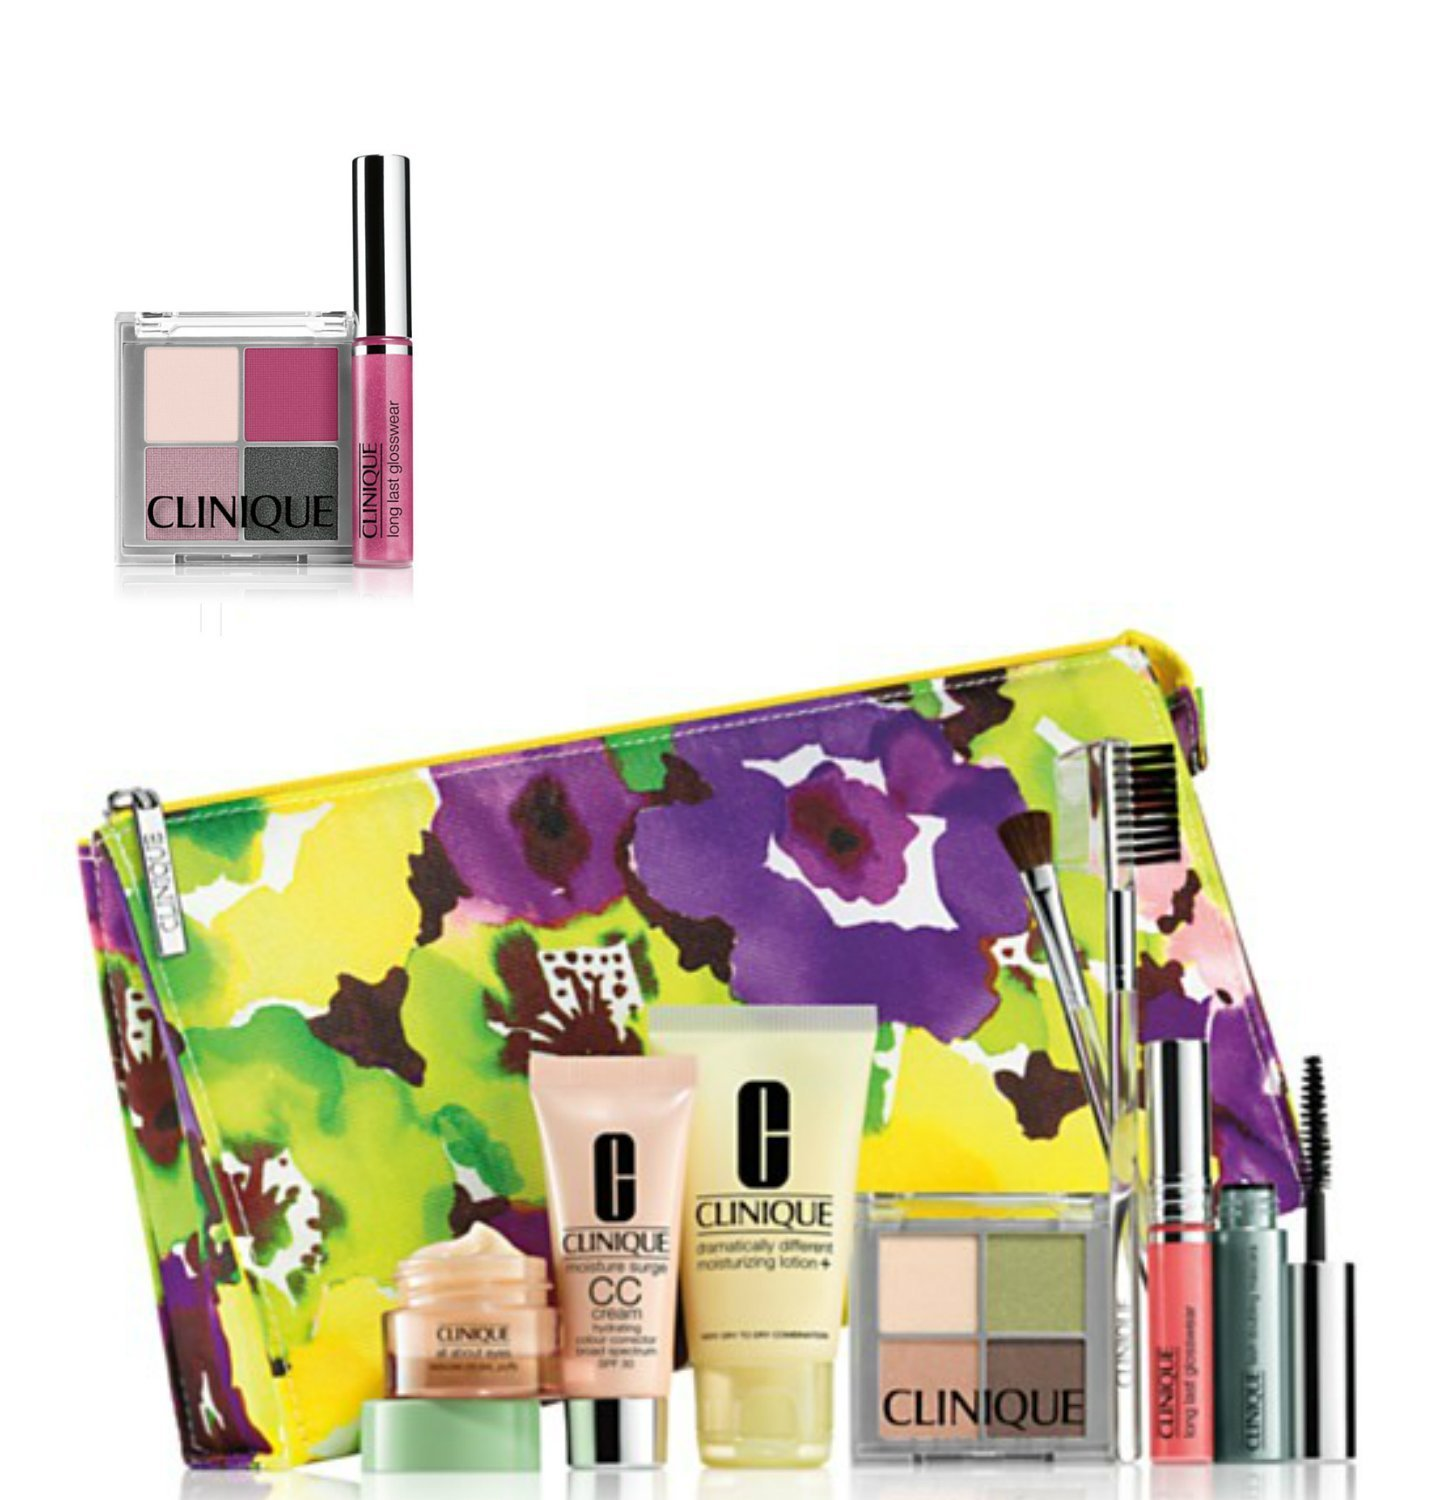 NEW 2015 Clinique 9 Pcs Makeup Skincare Gift Set with Brush Kit & More! ($85+ Value) by Clinique